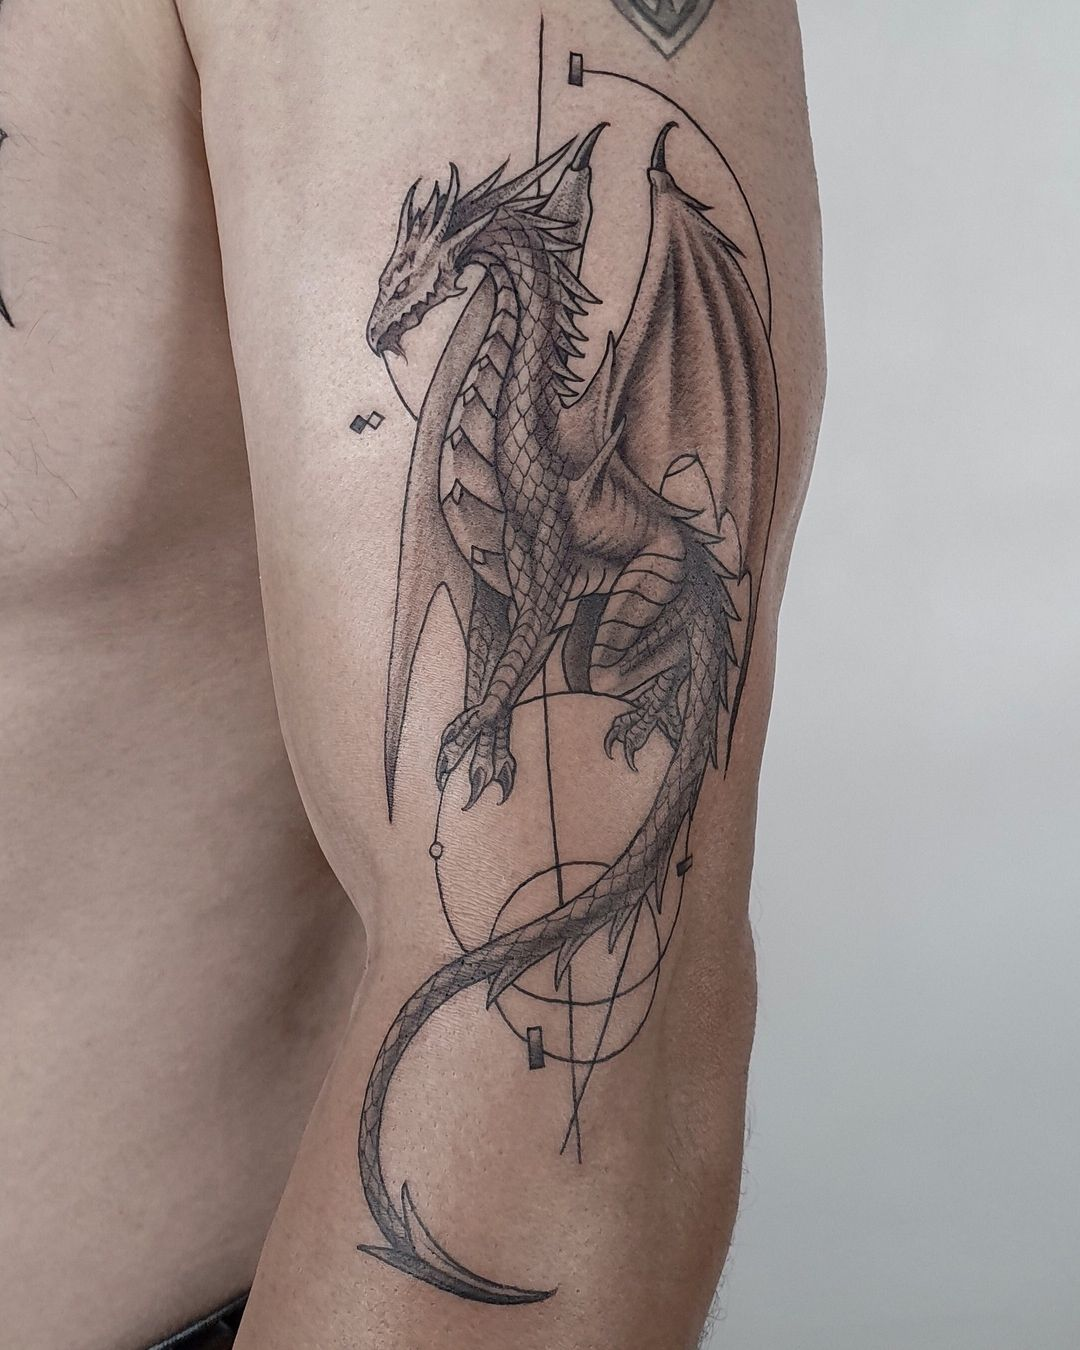 """Black House Tattoo Prague on Instagram: """"Dragon with impressive details for Alan 🐉Follow @pachan.prg & @blackhousetattoo to see more tattoos by us!😎"""""""